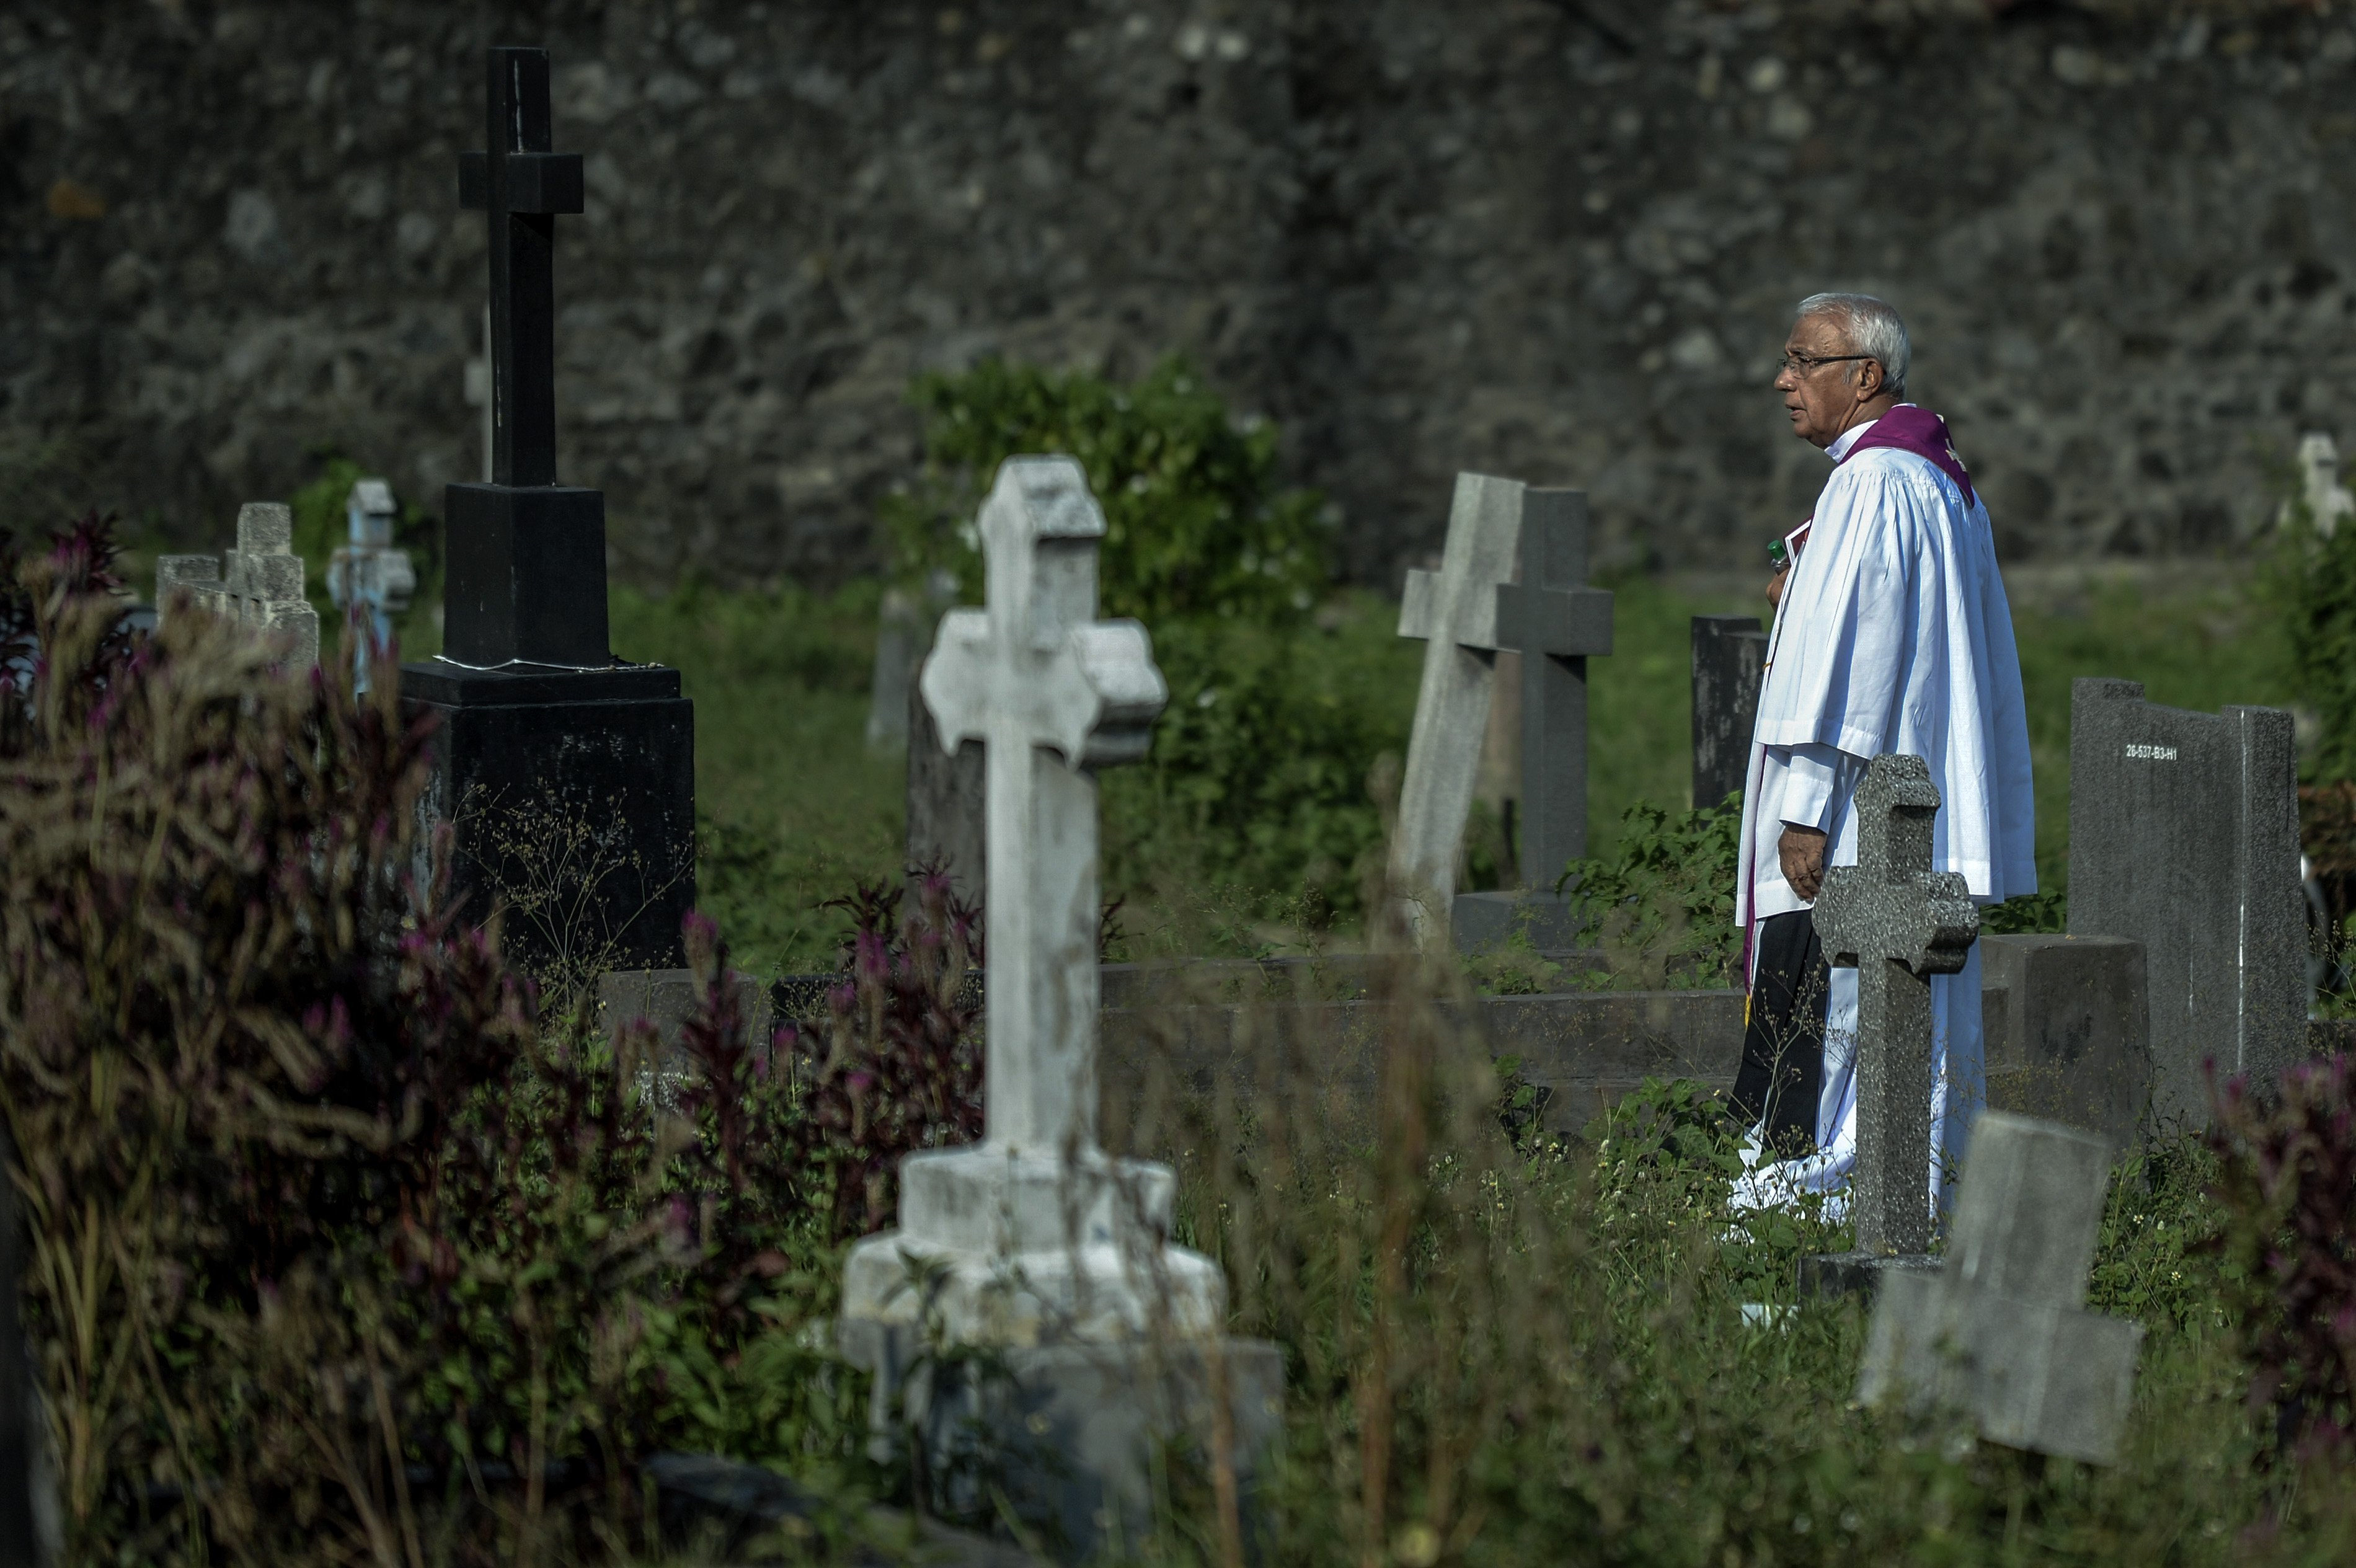 A priest waiting among the graves for the beginning of the burial of a victim of the Easter Sunday Bombings in Colombo, Sri Lanka | Photo: Getty Images